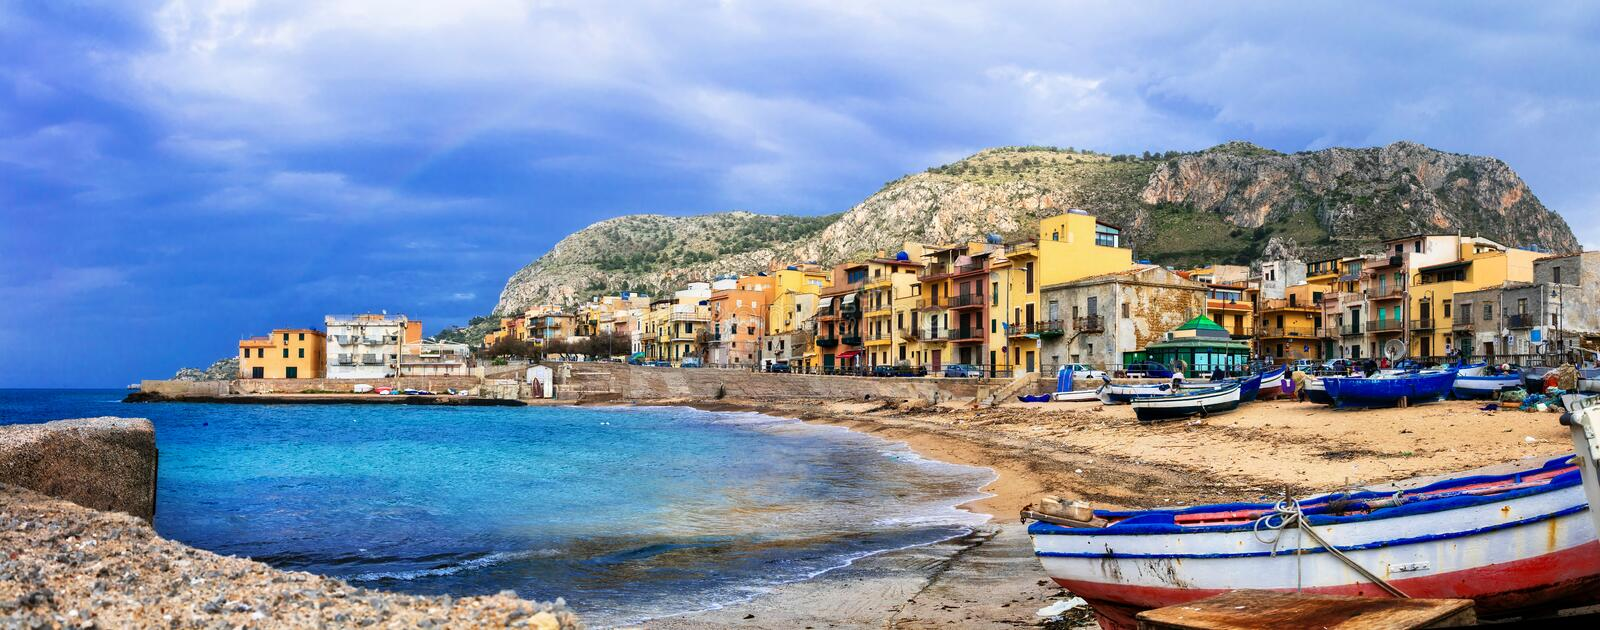 Traditional fishing village Aspra in Sicily, Italy stock photography